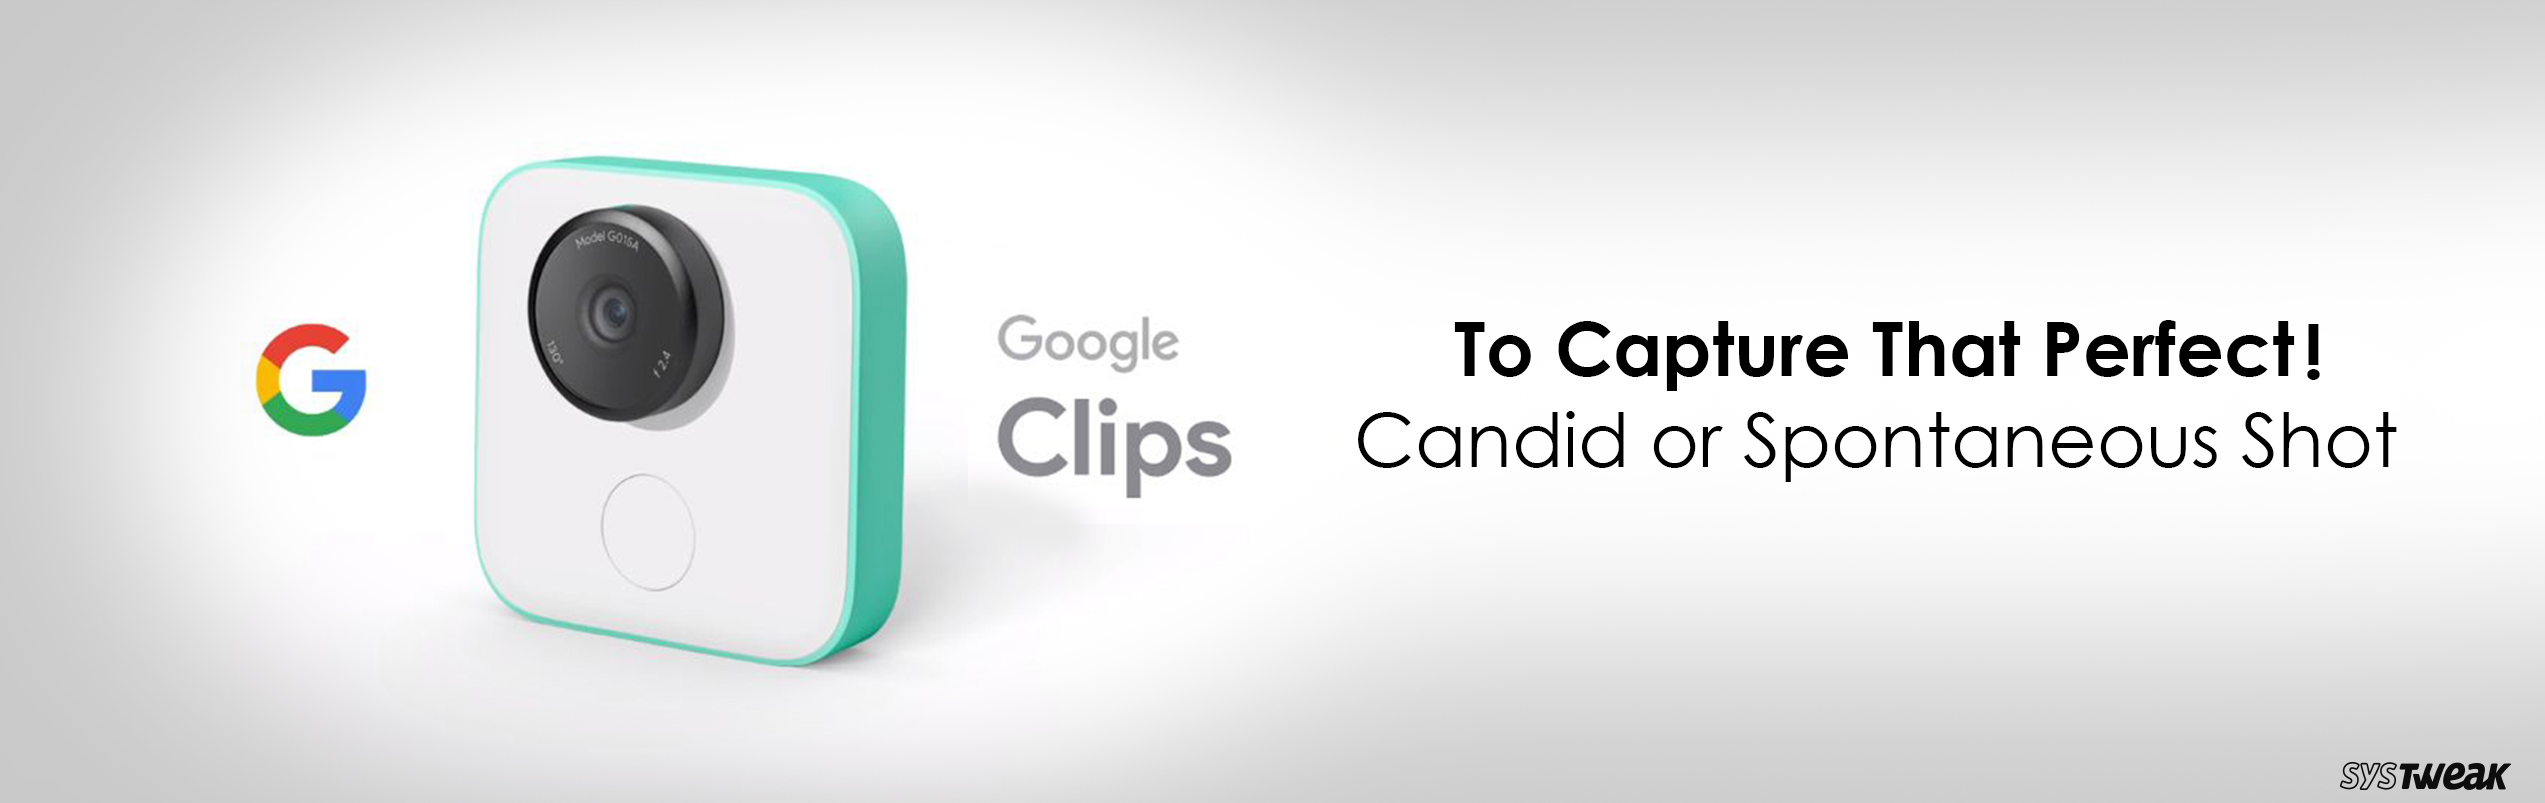 5 Tips & Tricks to Make the Most of Google Clips